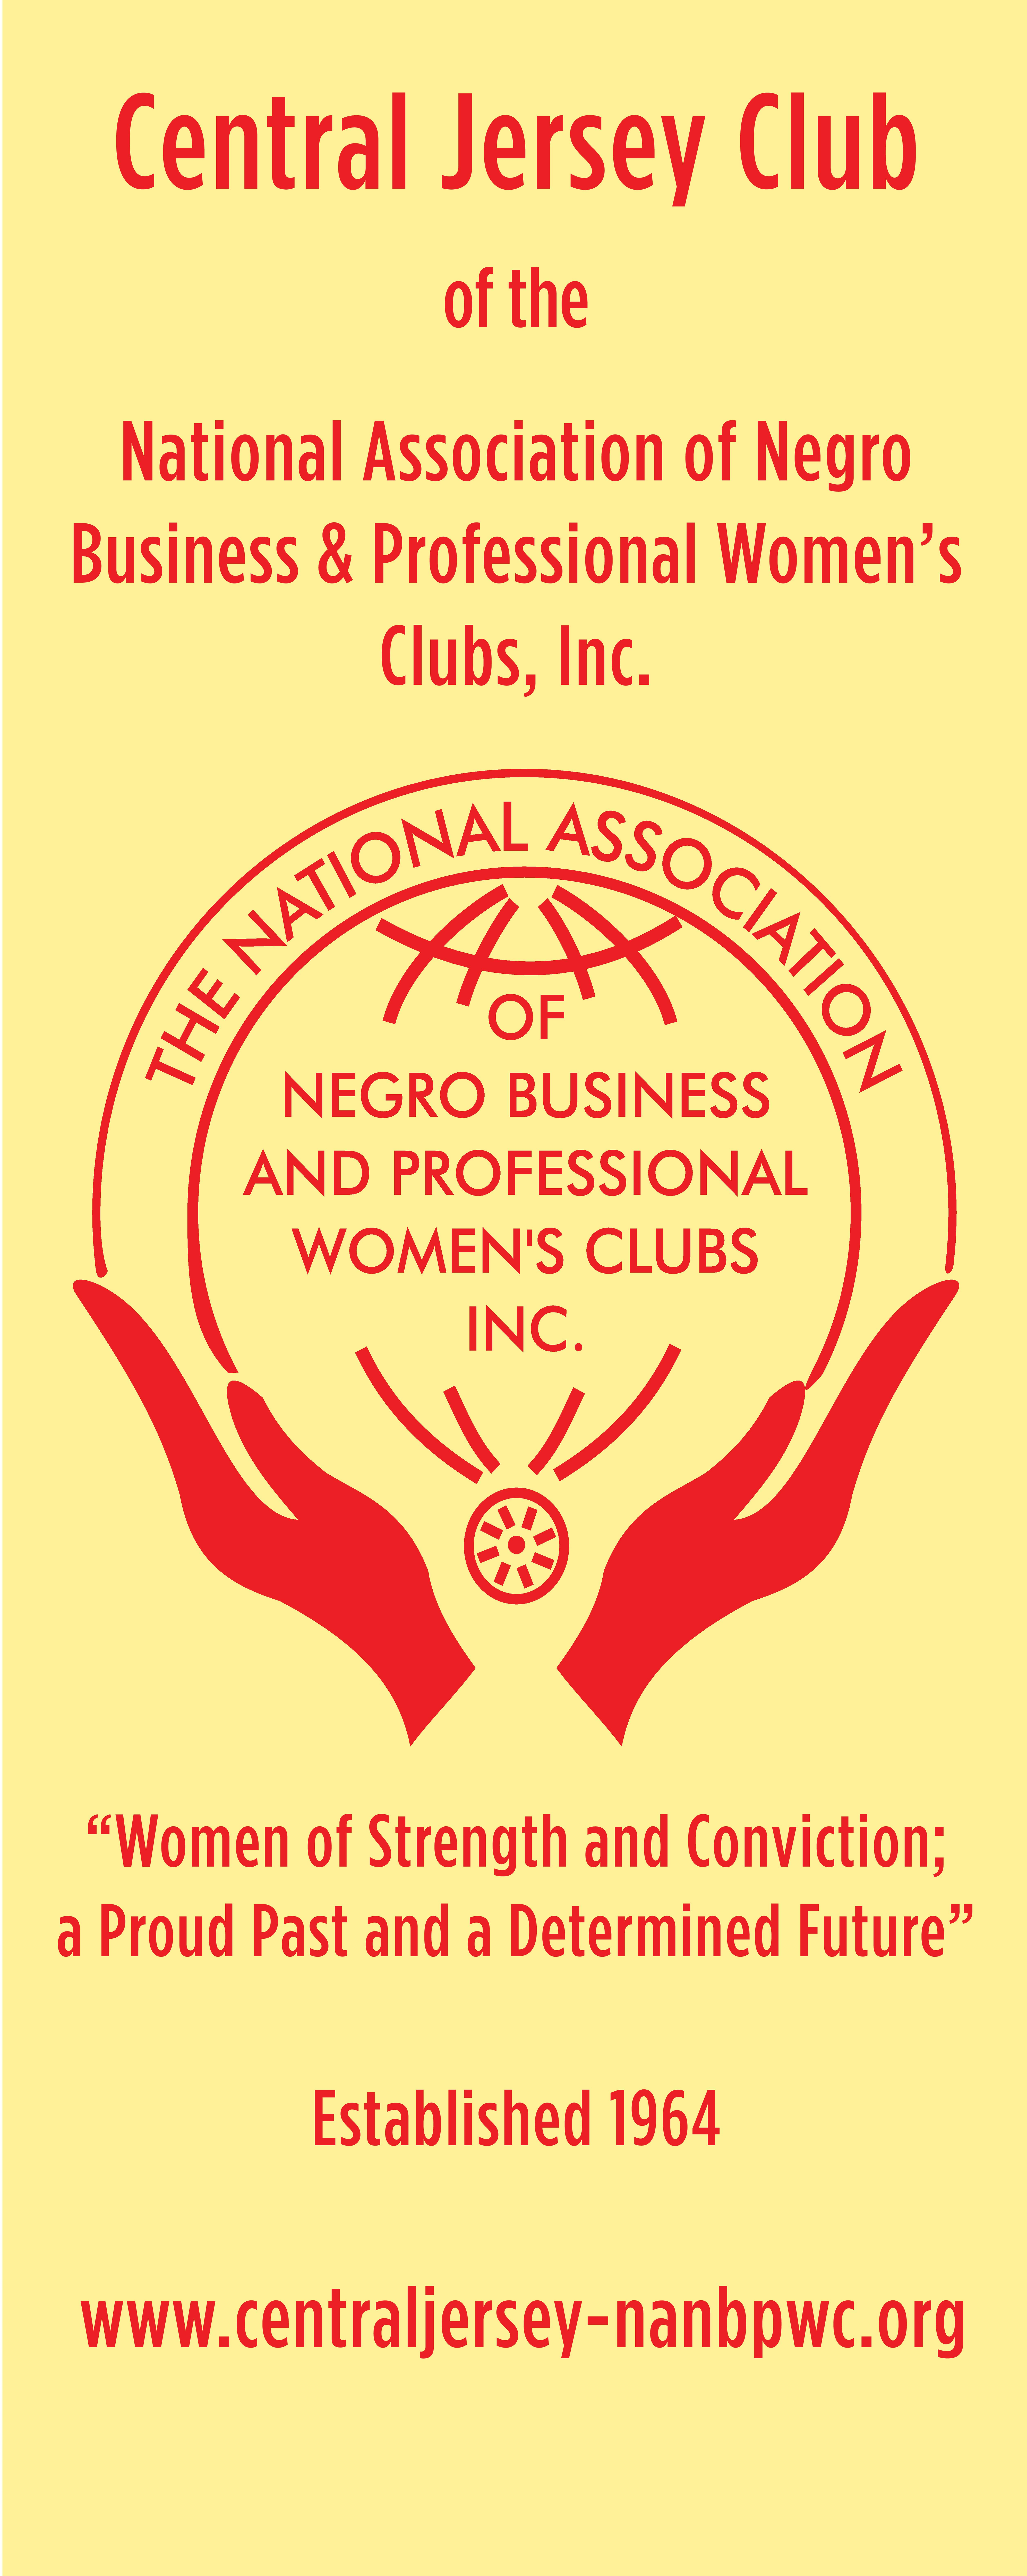 Central Jersey Club Nanbpwc Inc 54th Annual Founders Day